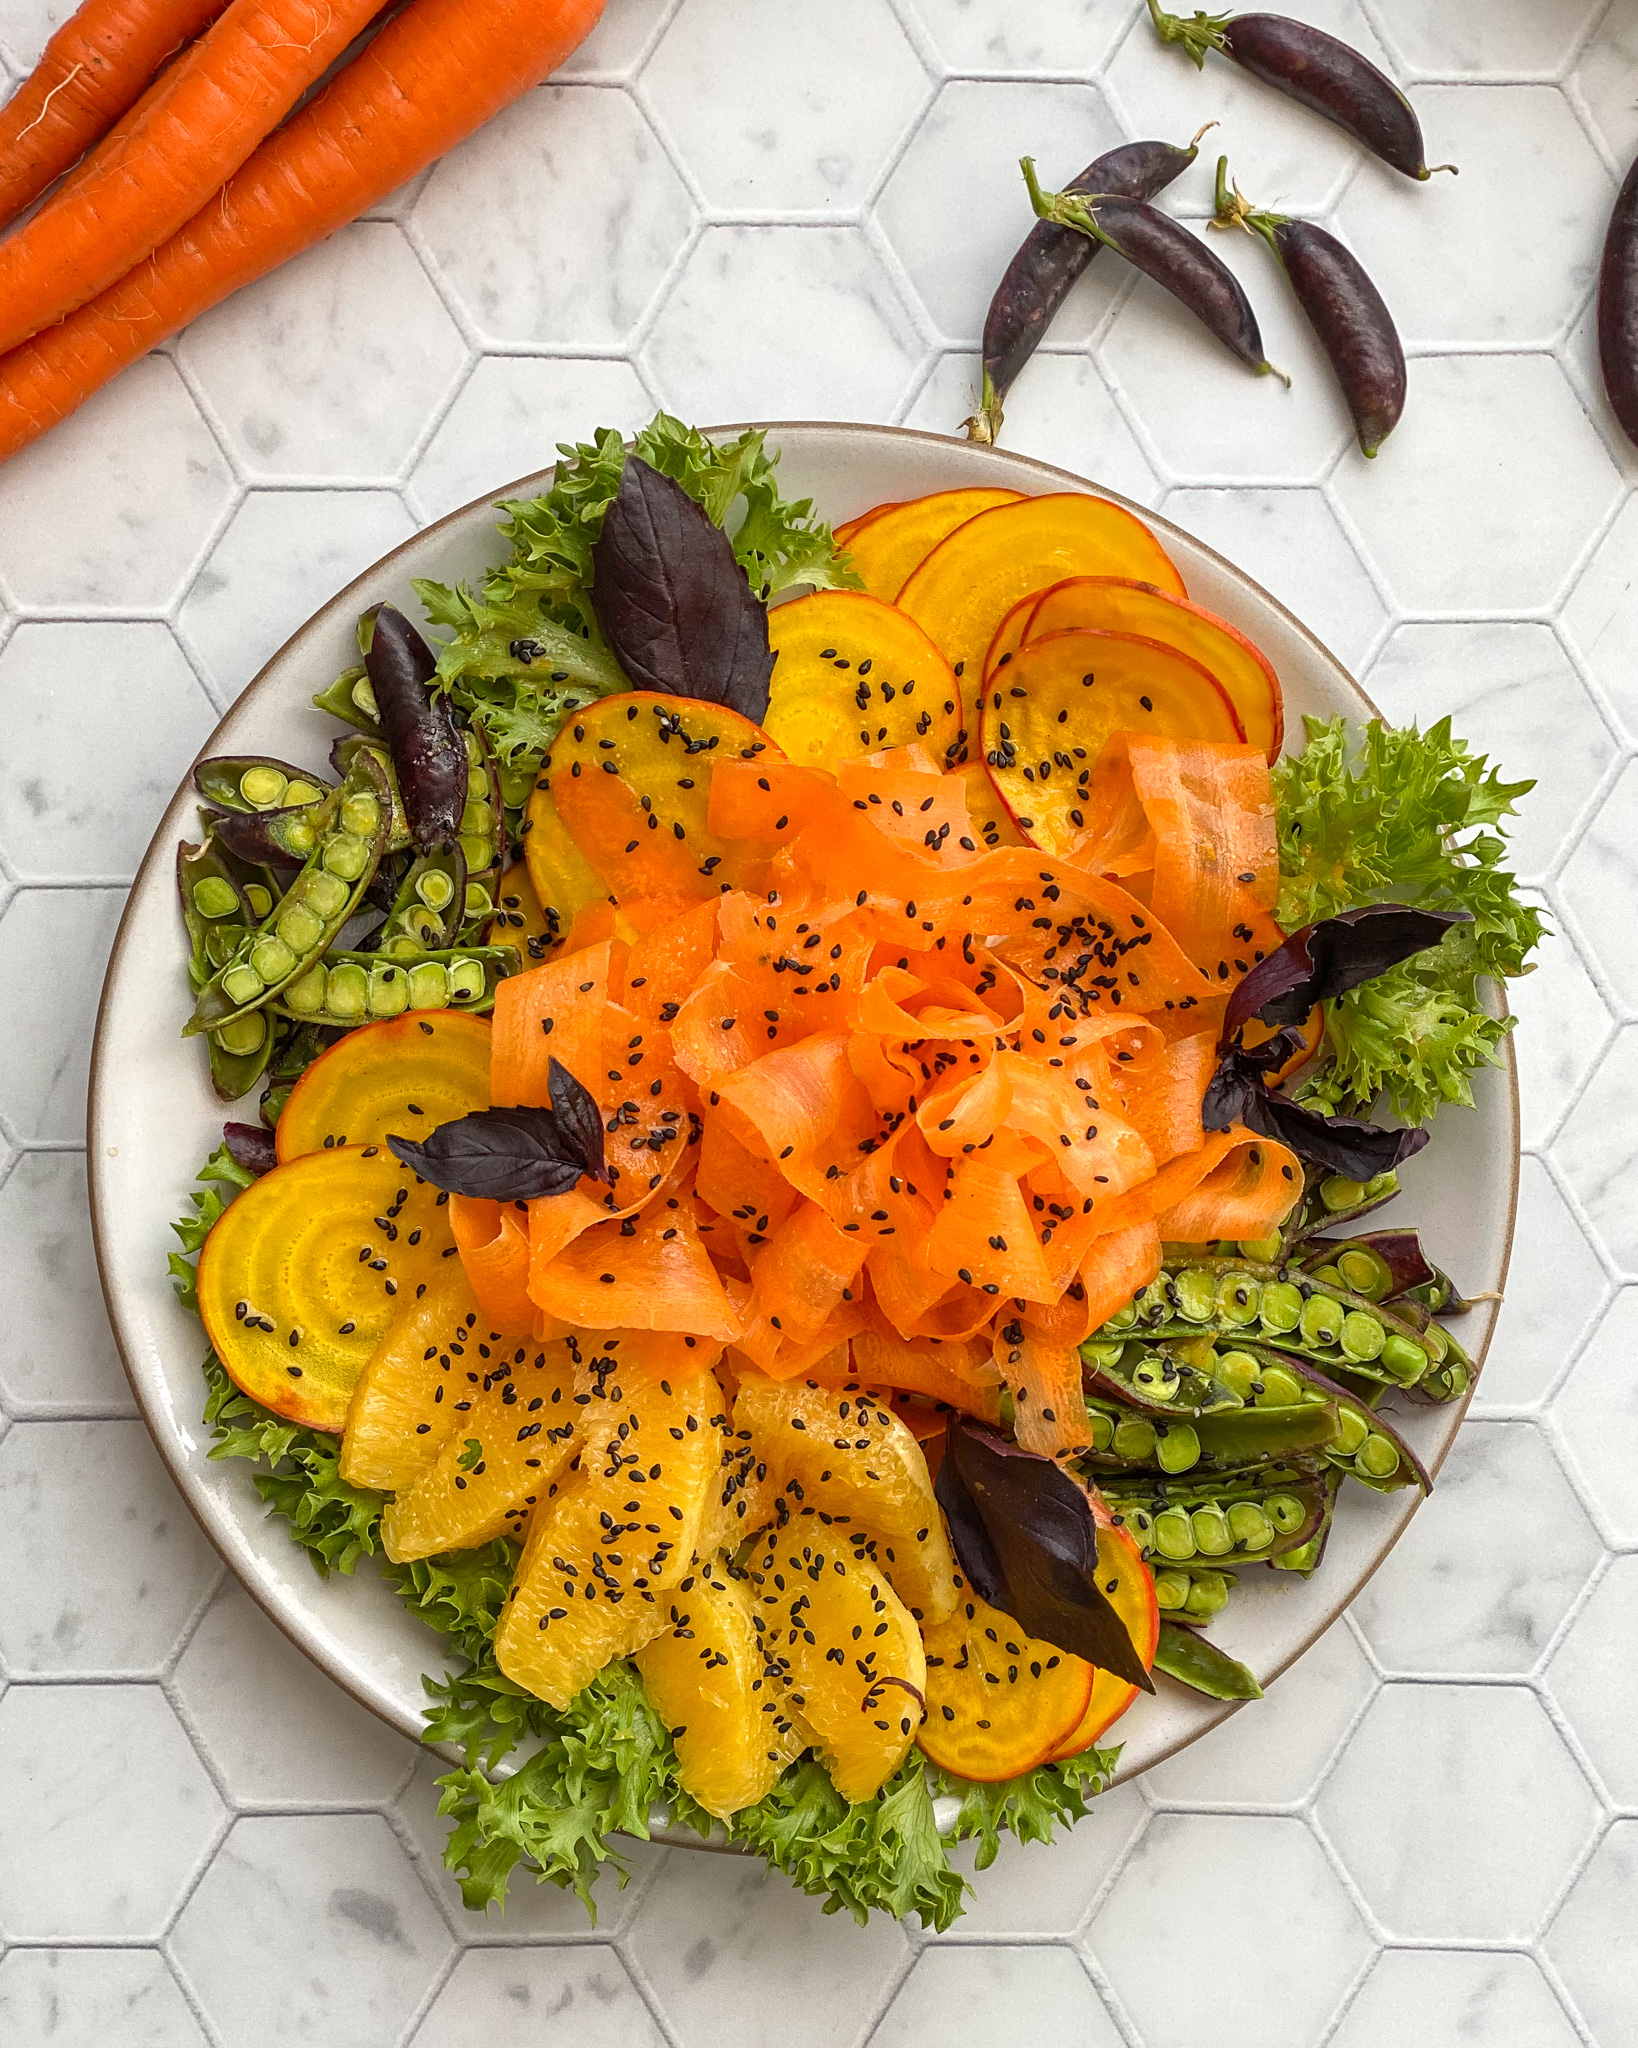 Shaved Carrot, Beet, and Snap Pea Salad with Orange Miso Vinaigrette